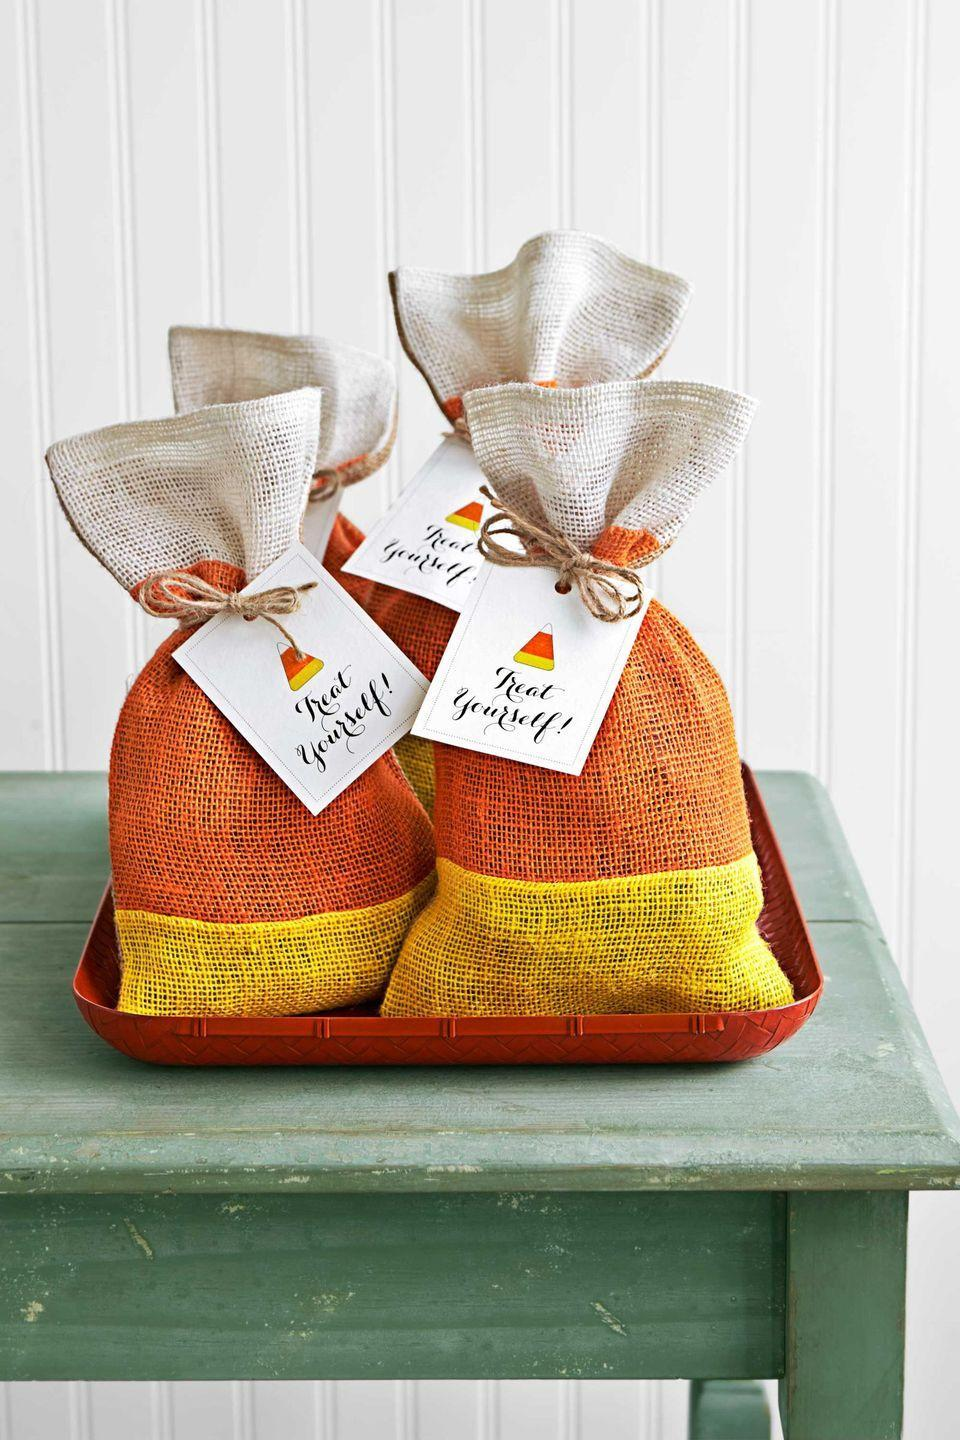 """<p>A sweet treat that also adds a festive element to the house? Yes please. </p><p><em>Get the tutorial at <a href=""""https://www.countryliving.com/diy-crafts/g1189/best-halloween-crafts-ever/?slide=34"""" rel=""""nofollow noopener"""" target=""""_blank"""" data-ylk=""""slk:Country Living"""" class=""""link rapid-noclick-resp"""">Country Living</a>.</em> </p><p><strong>What You'll Need: </strong><a href=""""https://www.amazon.com/Amariver-Natural-Drawstring-Reusable-Birthday/dp/B071HYKQHW?linkCode=ogi&tag=syn-yahoo-20&ascsubtag=%5Bartid%7C10070.g.1279%5Bsrc%7Cyahoo-us"""" rel=""""nofollow noopener"""" target=""""_blank"""" data-ylk=""""slk:Burlap bags"""" class=""""link rapid-noclick-resp"""">Burlap bags</a> ($9, Amazon)</p>"""